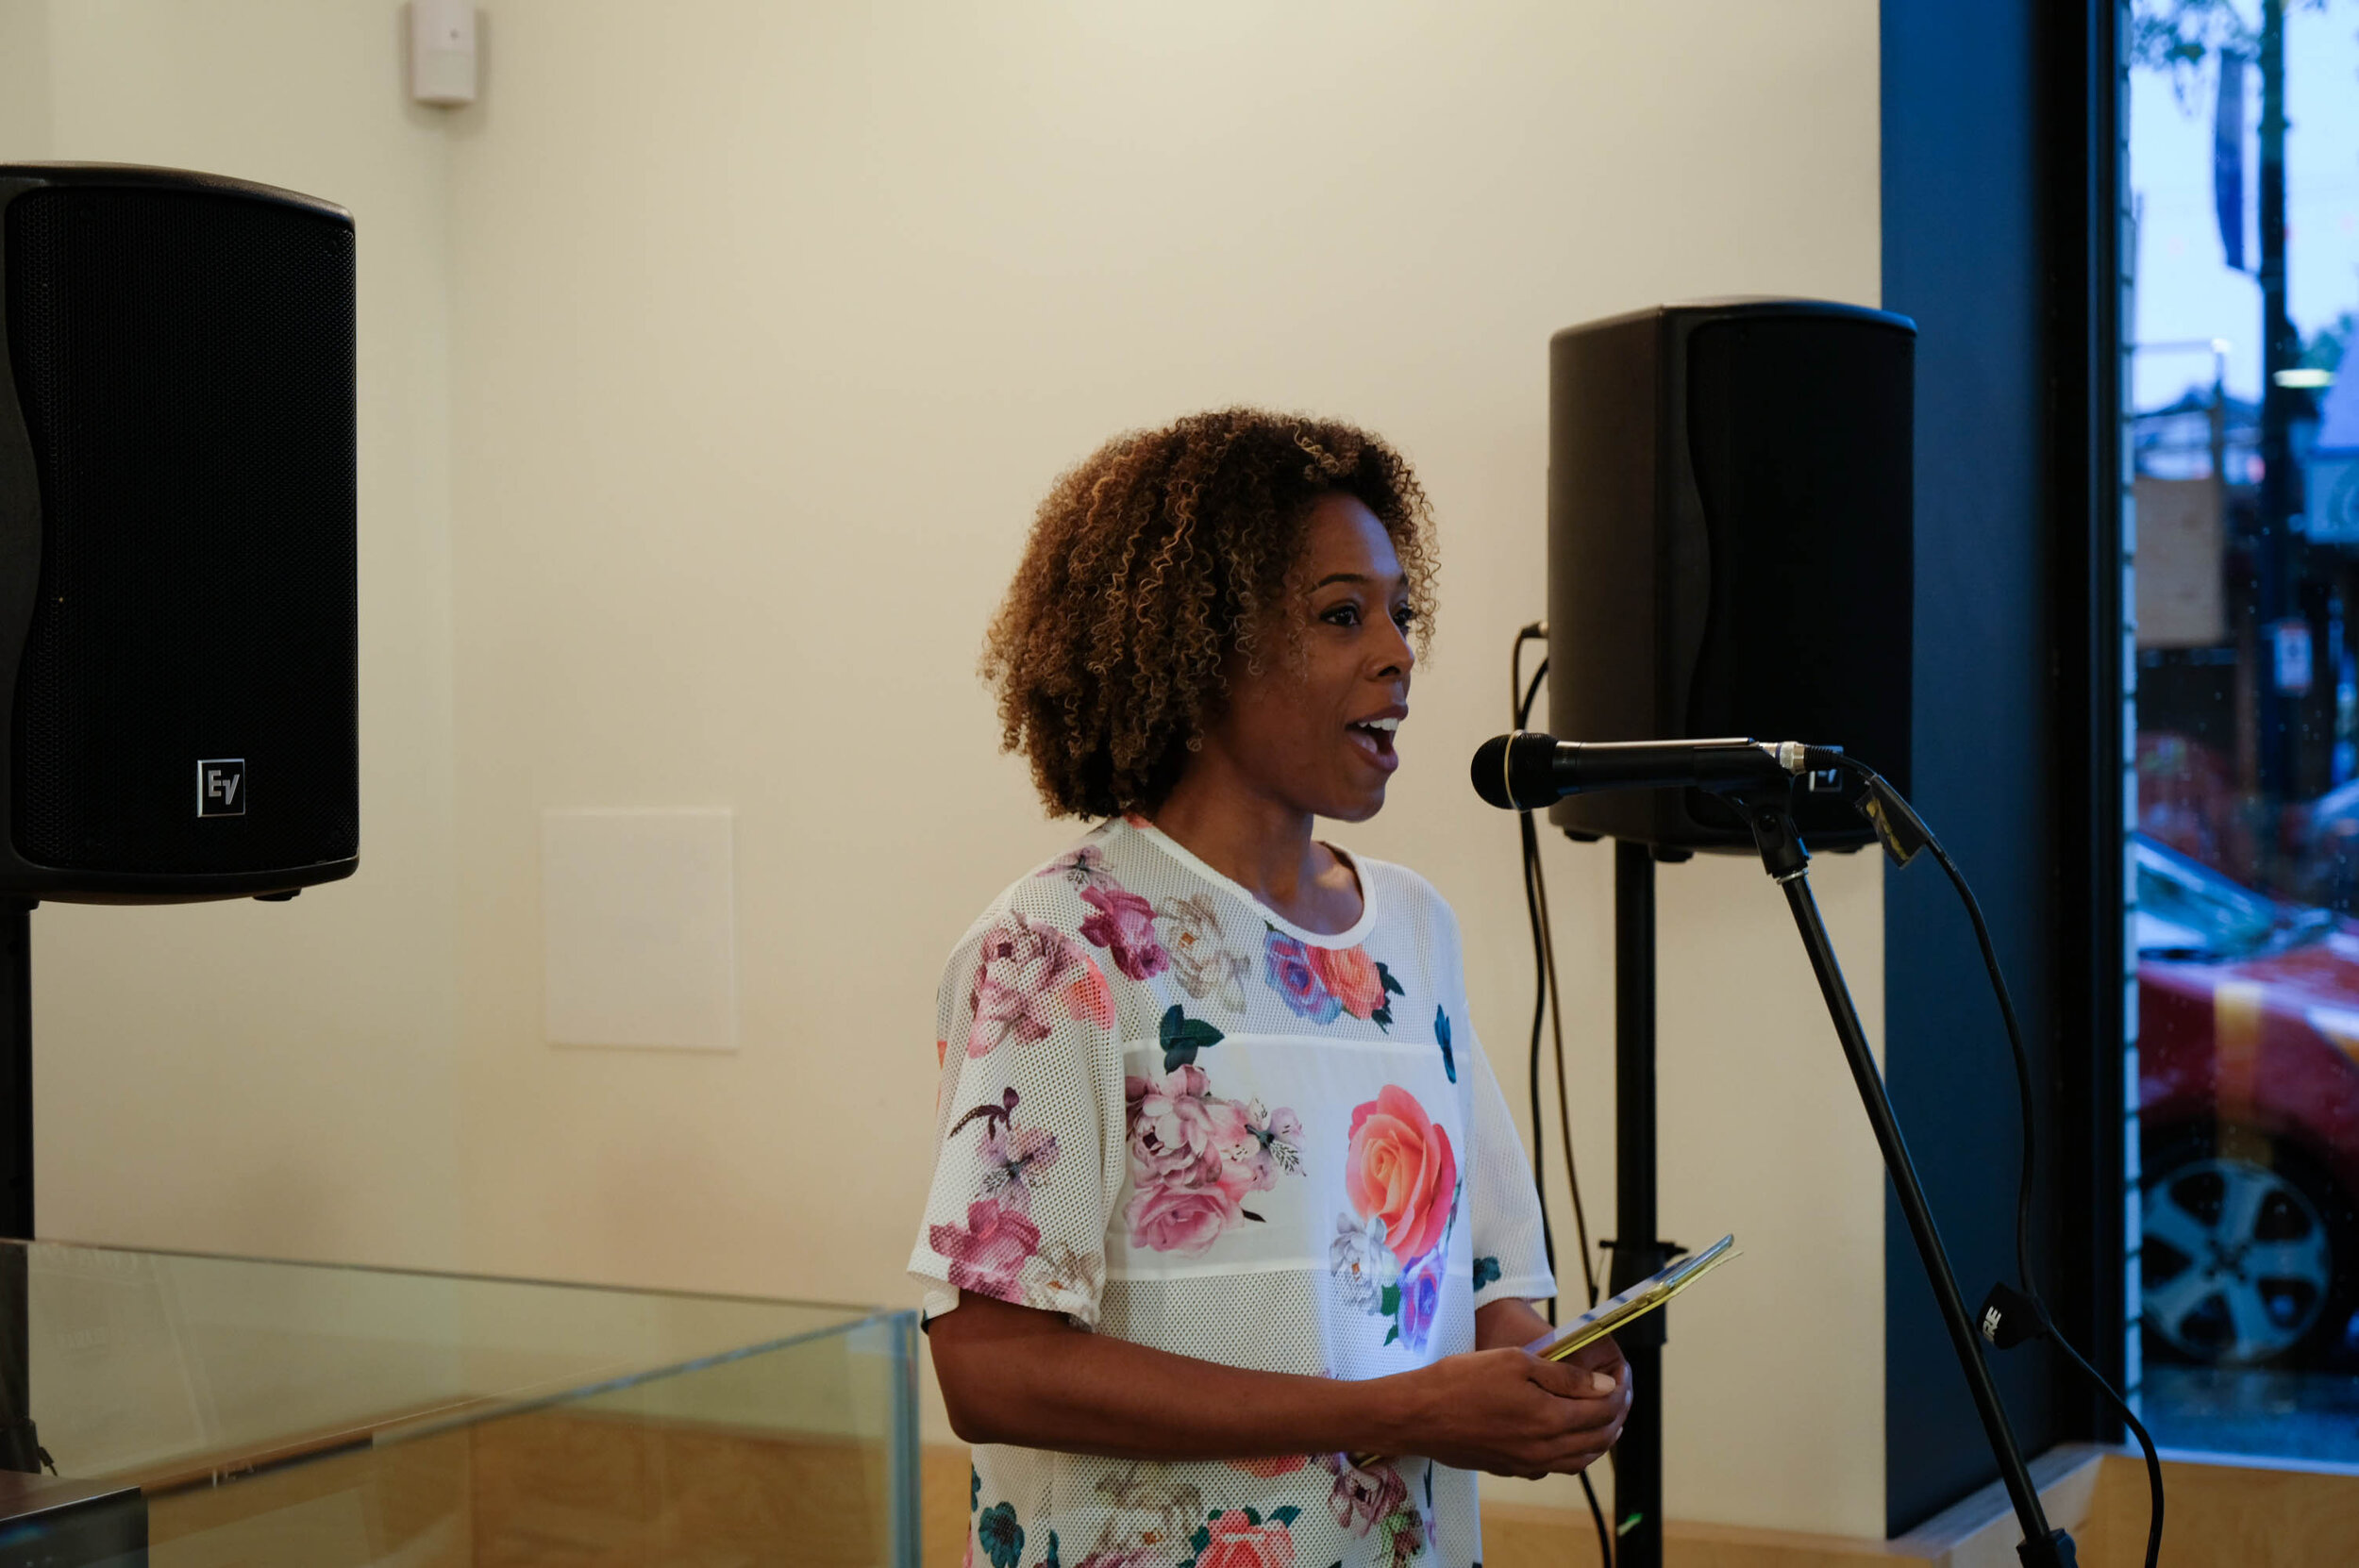 Storyteller & poet Crystal on: resisting expectations of femininity - a reclamation  Photographed by O. Fellows